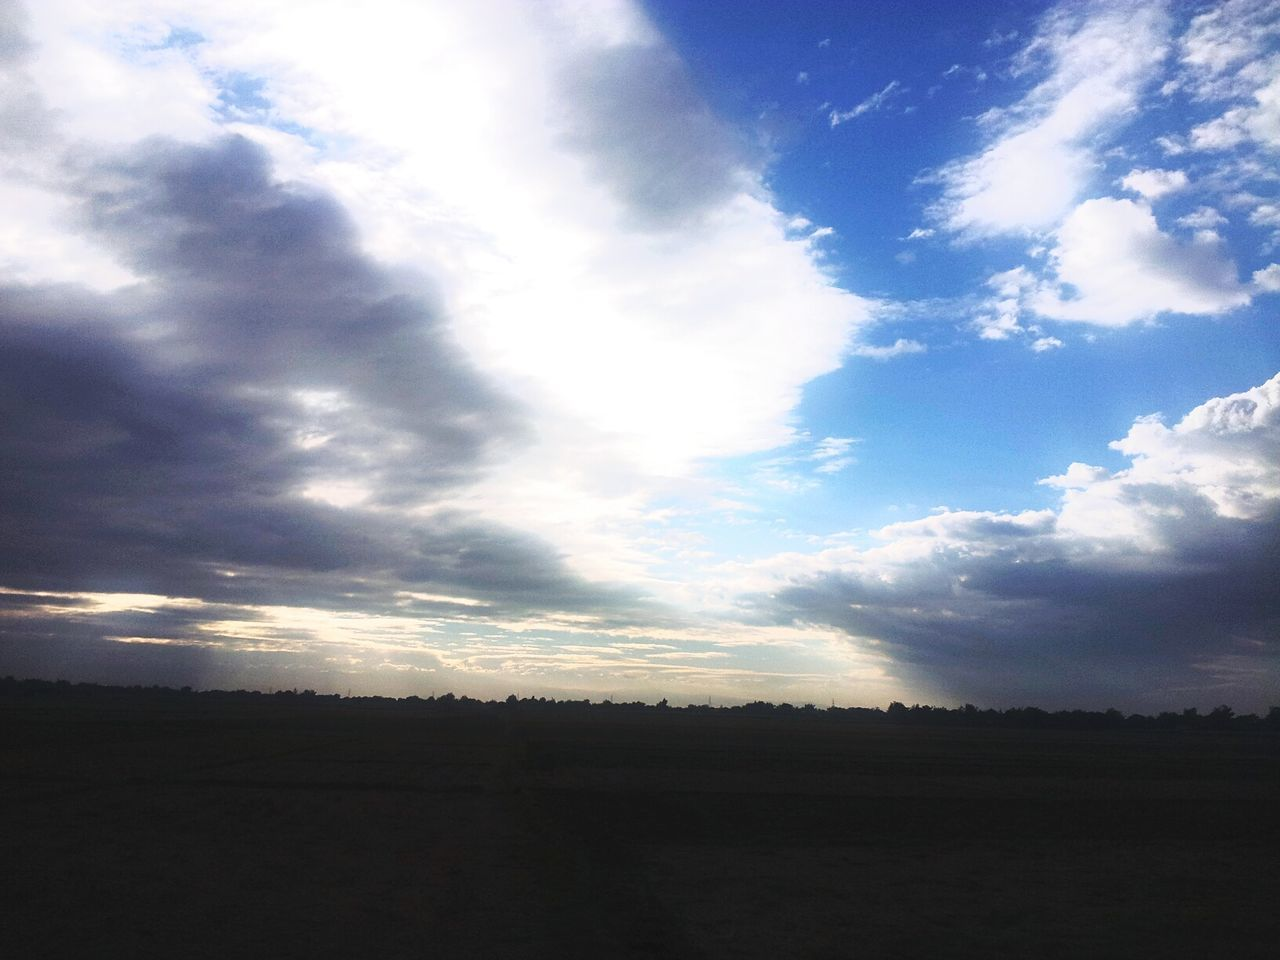 sky, cloud - sky, landscape, nature, tranquil scene, no people, tranquility, scenics, beauty in nature, silhouette, field, day, outdoors, tree